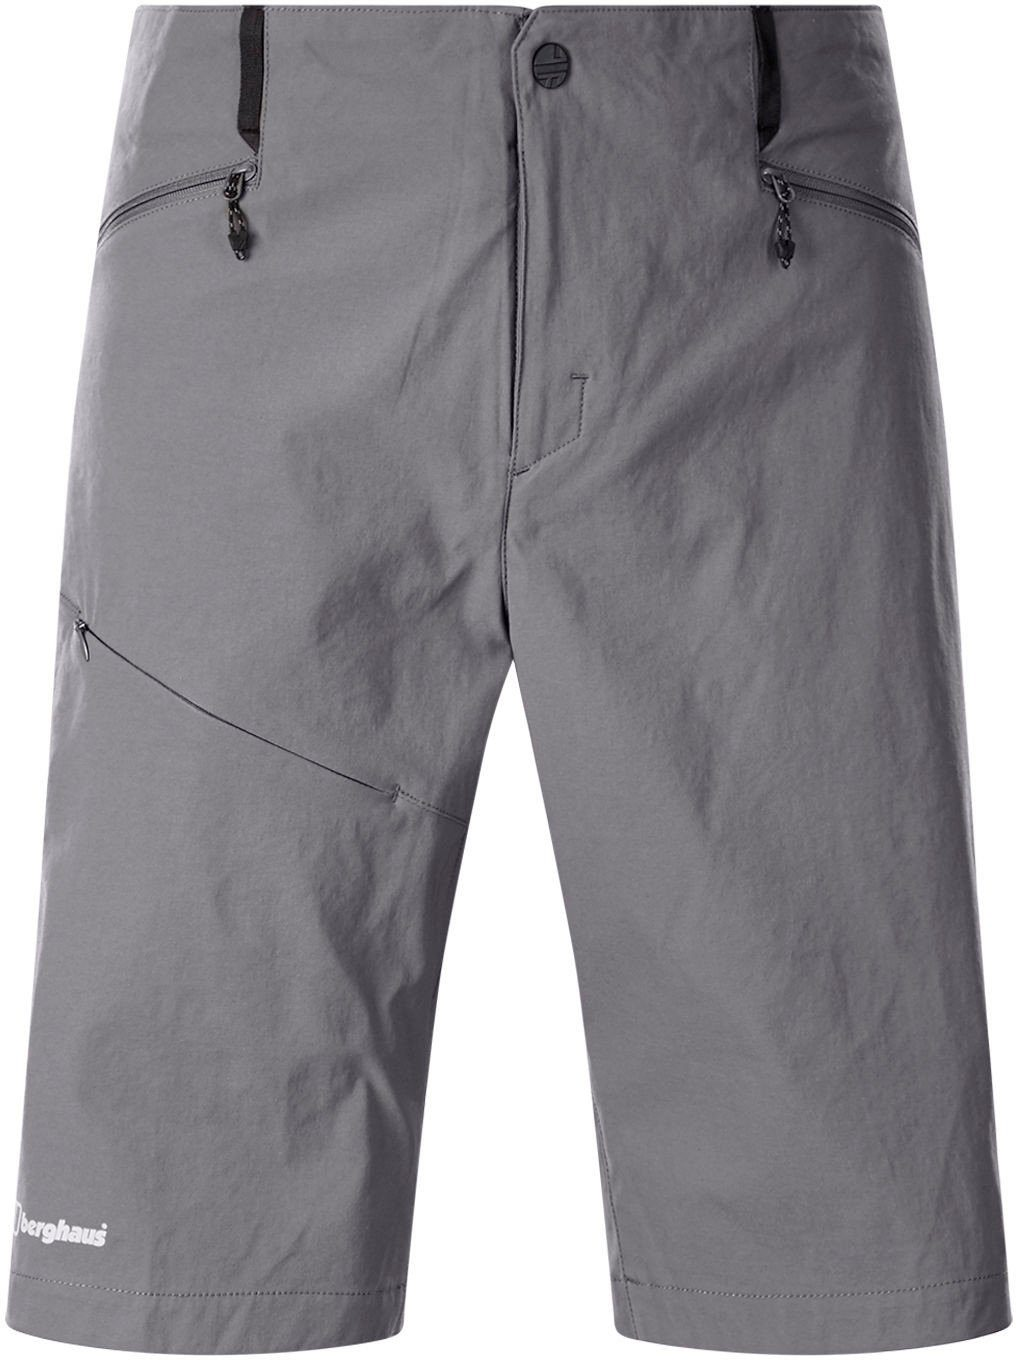 Berghaus Hose »Baggy Light Shorts Men«